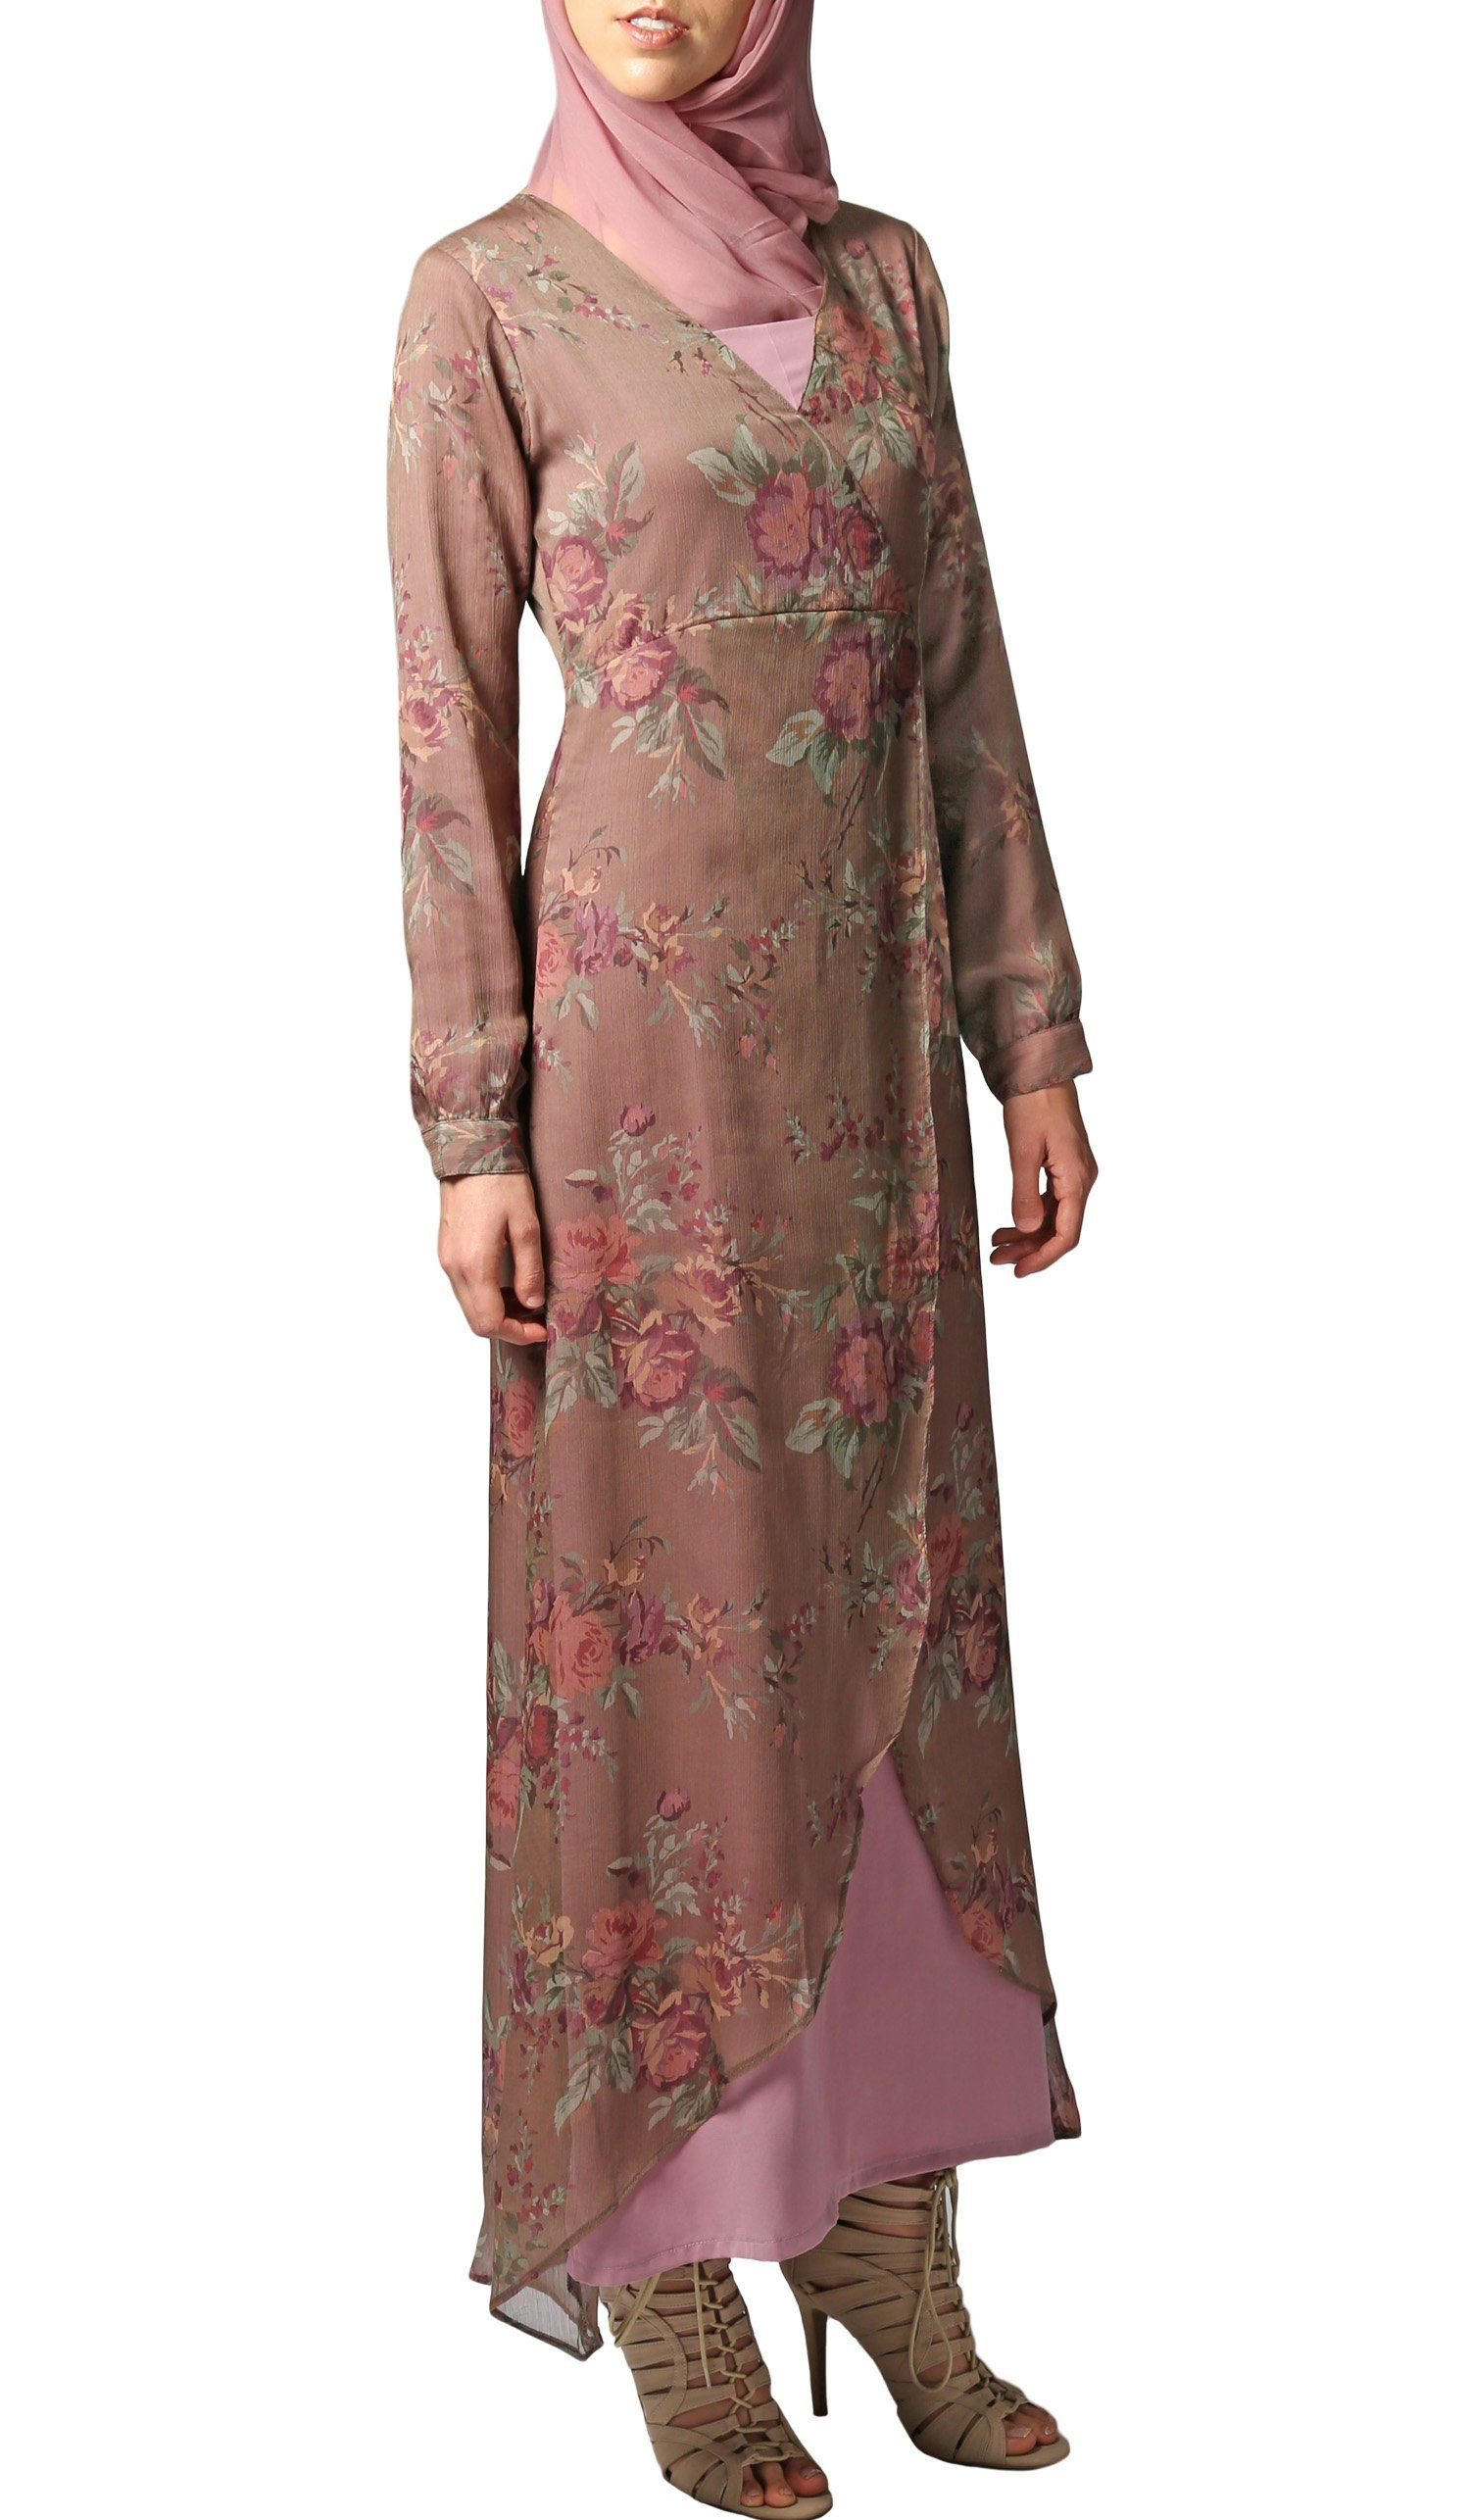 32ebd6a70b7 Brown Pink Floral Chiffon Modest Islamic Maxi Dress